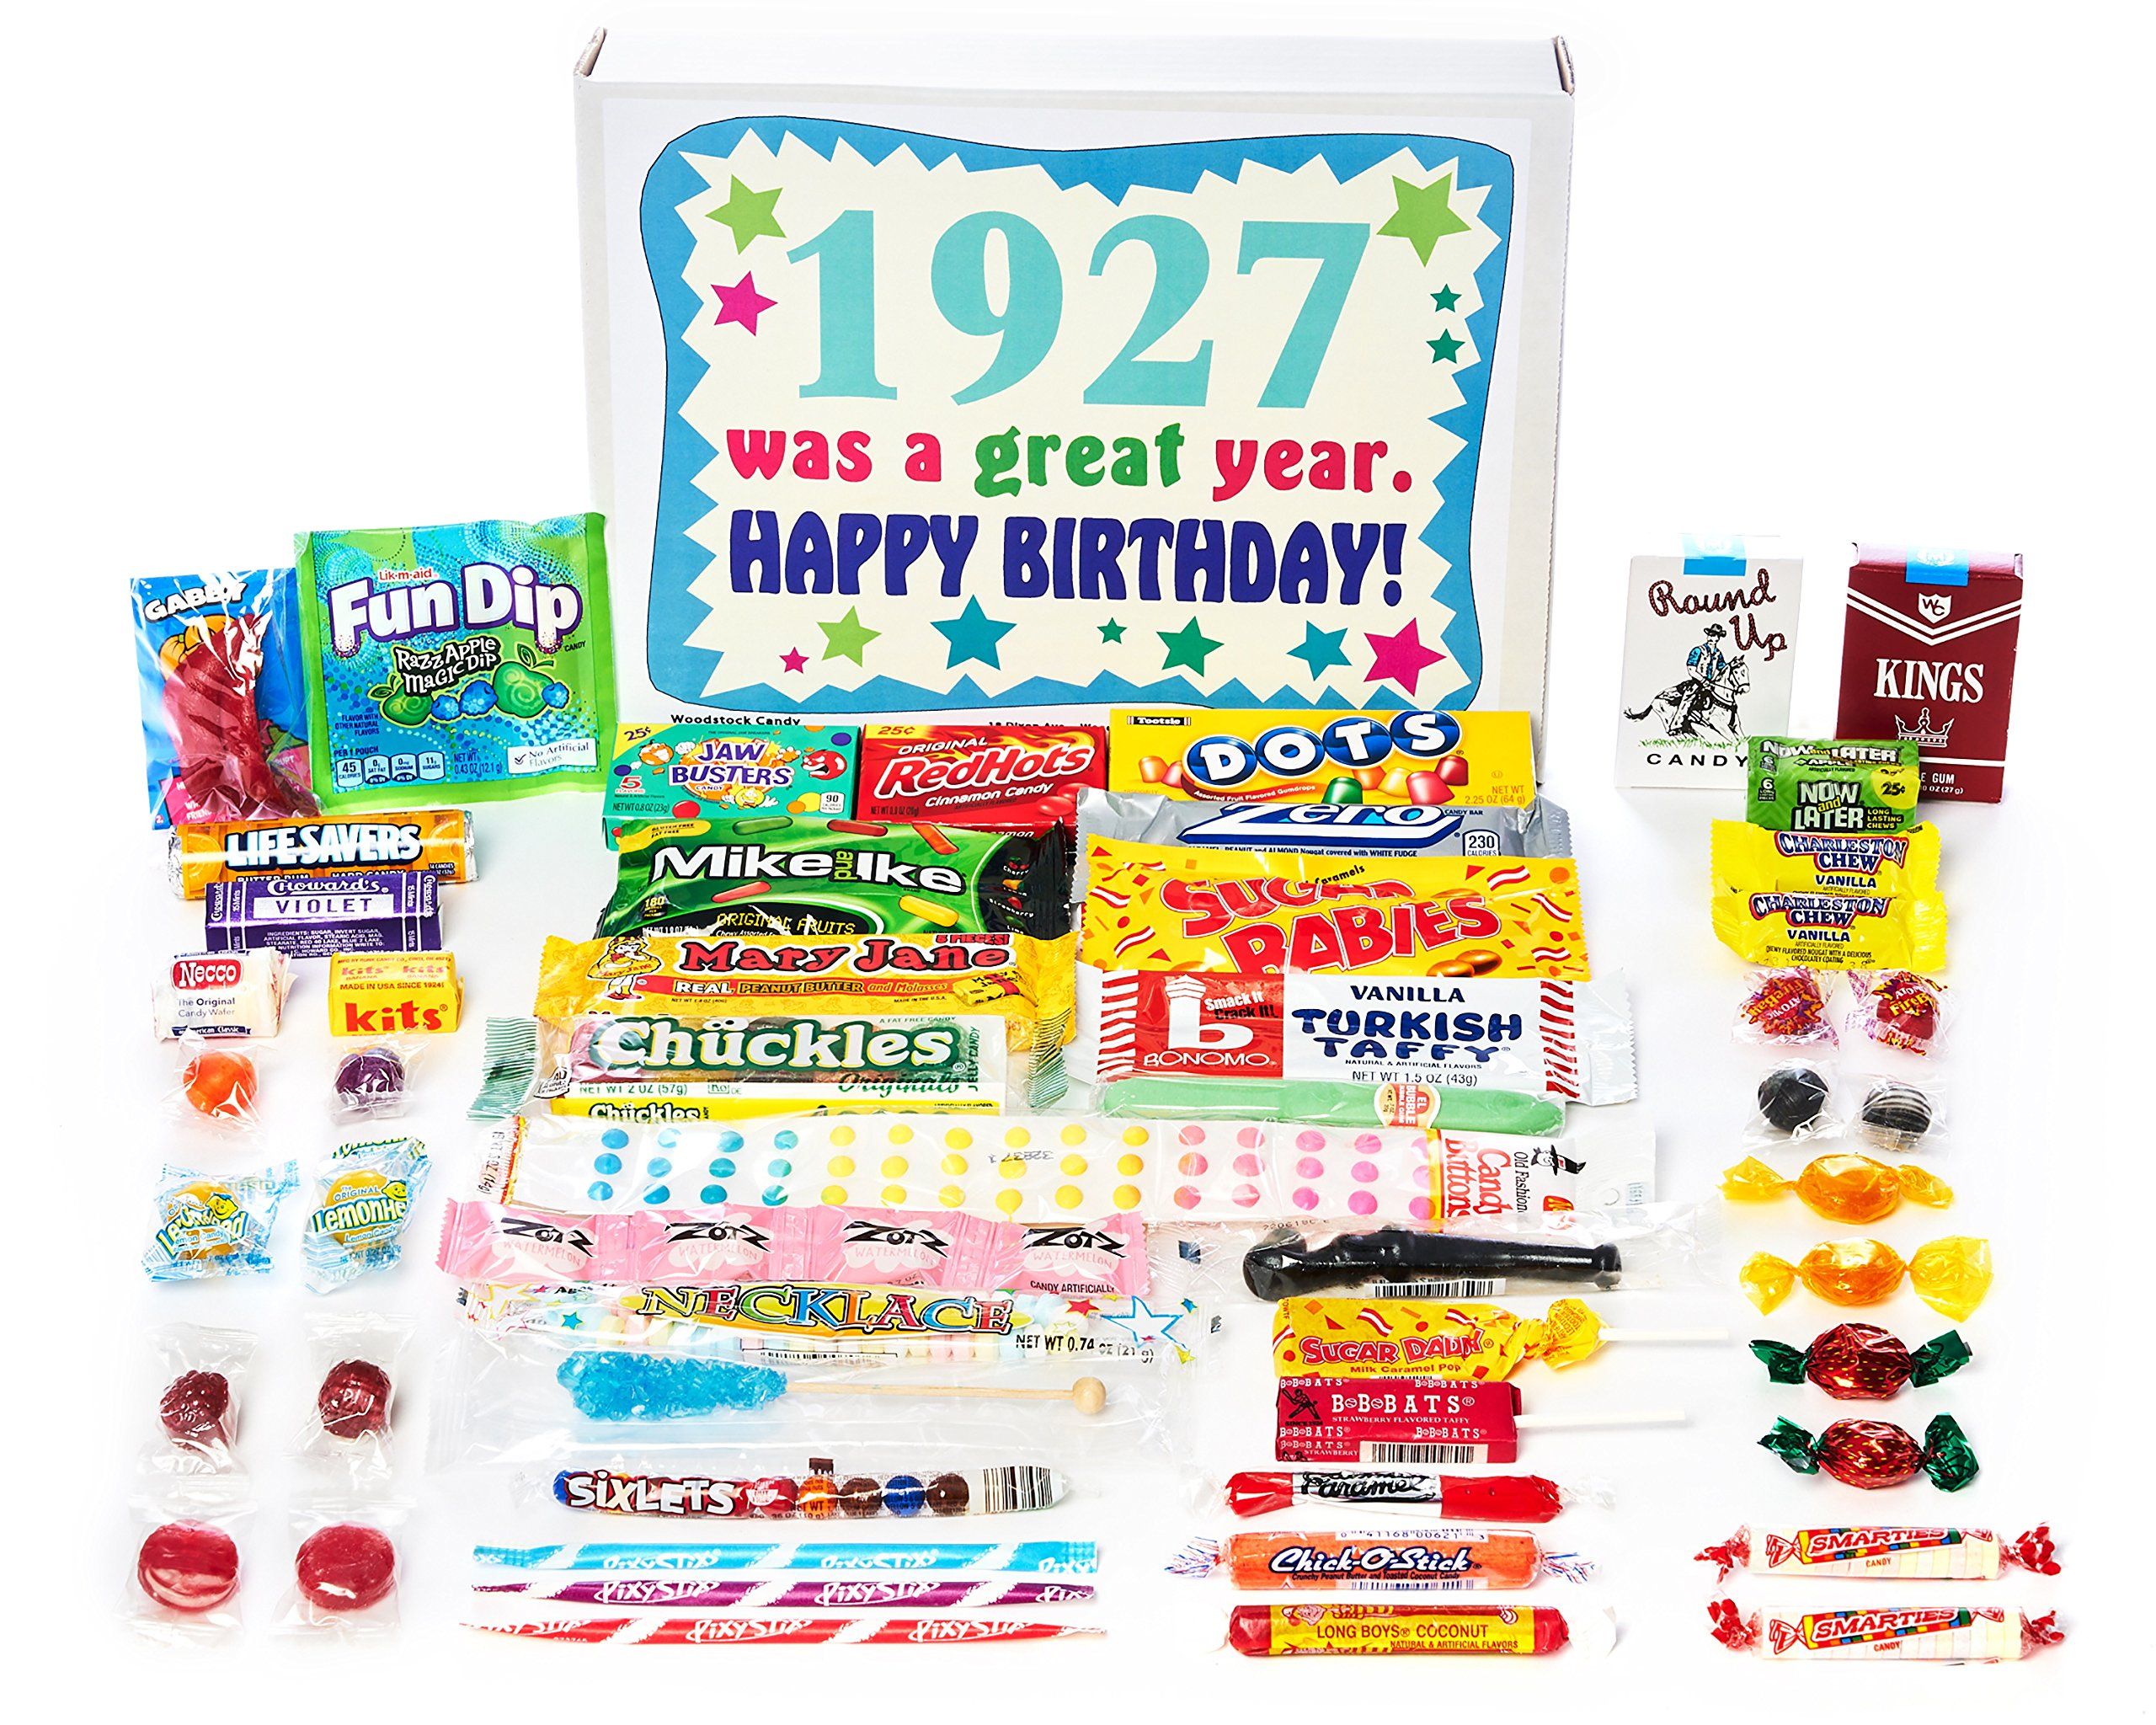 Woodstock Candy ~ 1927 92nd Birthday Gift Box of Nostalgic Retro Candy from Childhood for 92 Year Old Man or Woman Born 1927